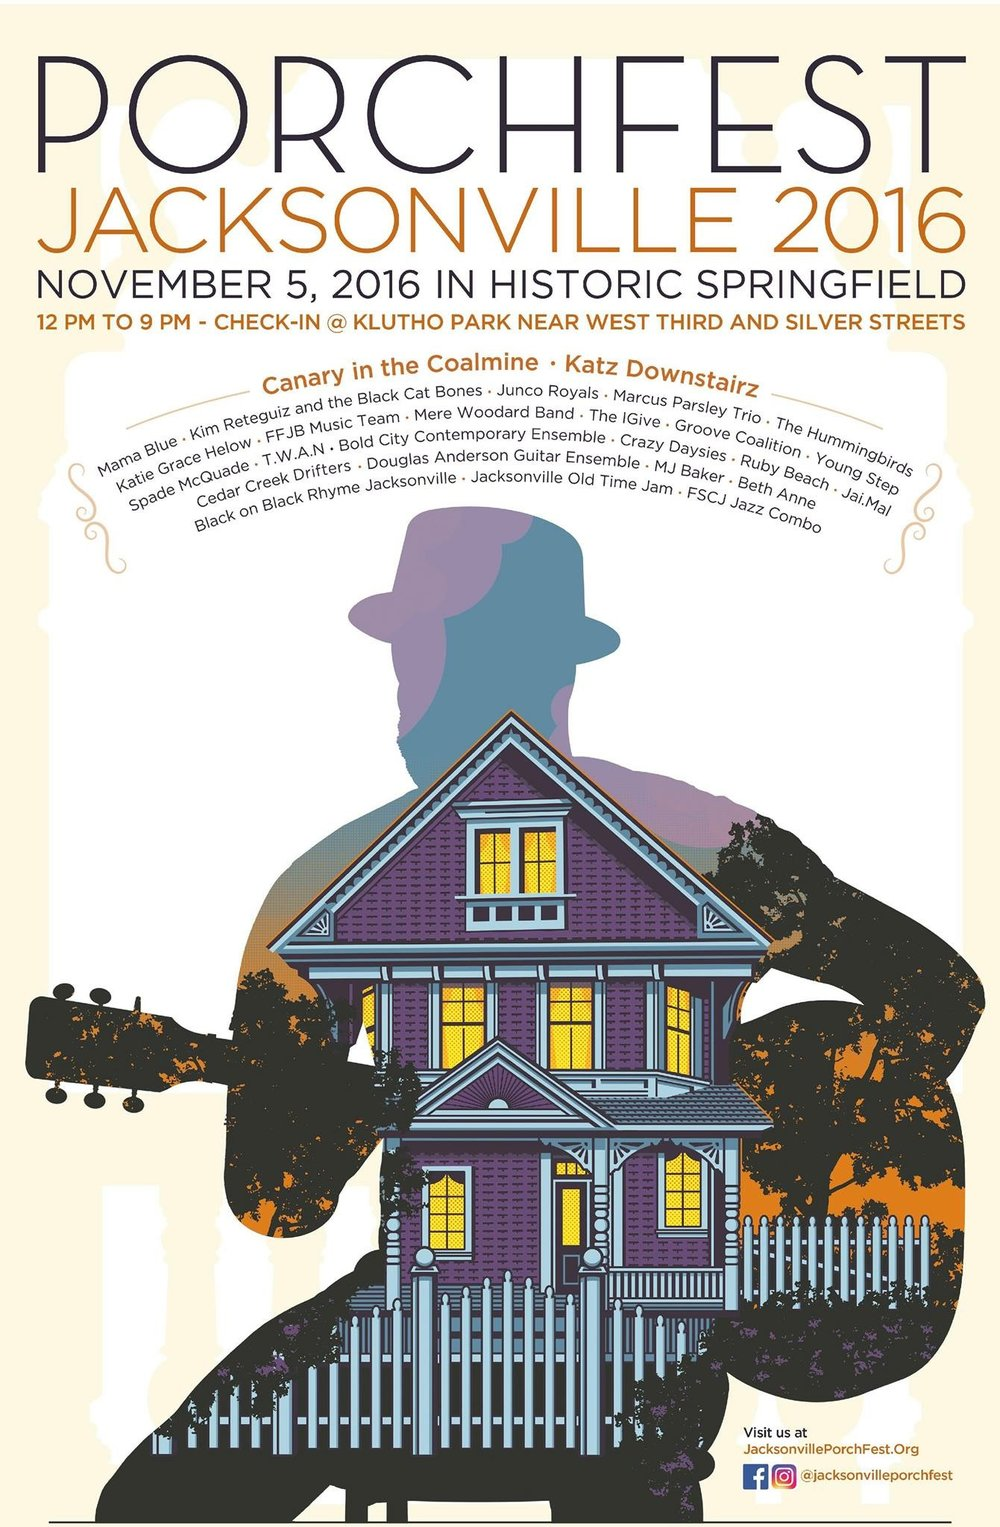 The Jacksonville Porchfest 2016 takes place this Saturday in the Historic Springfield District of Jacksonville, FL